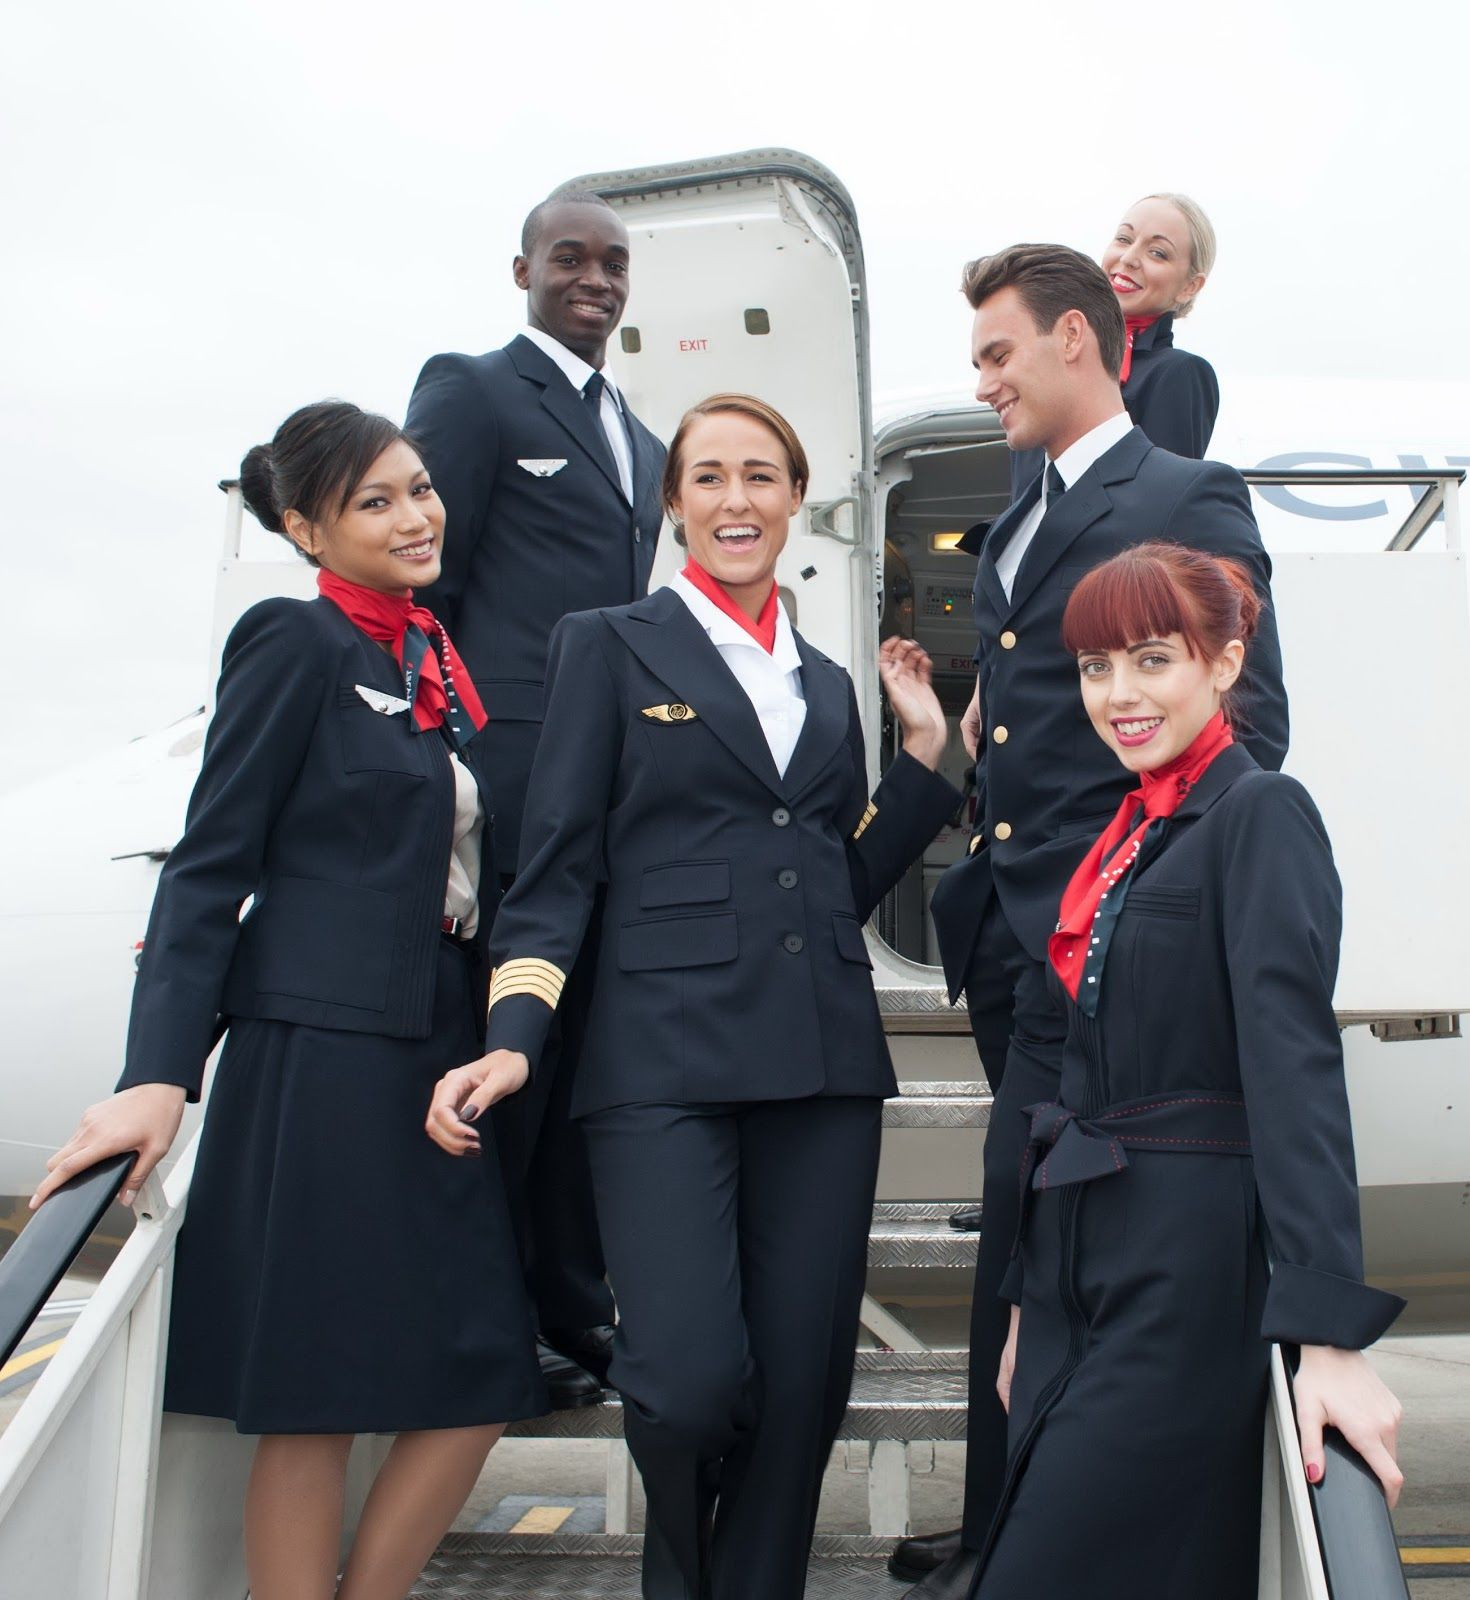 Air Canada Flight Attendants Airlines Pinterest